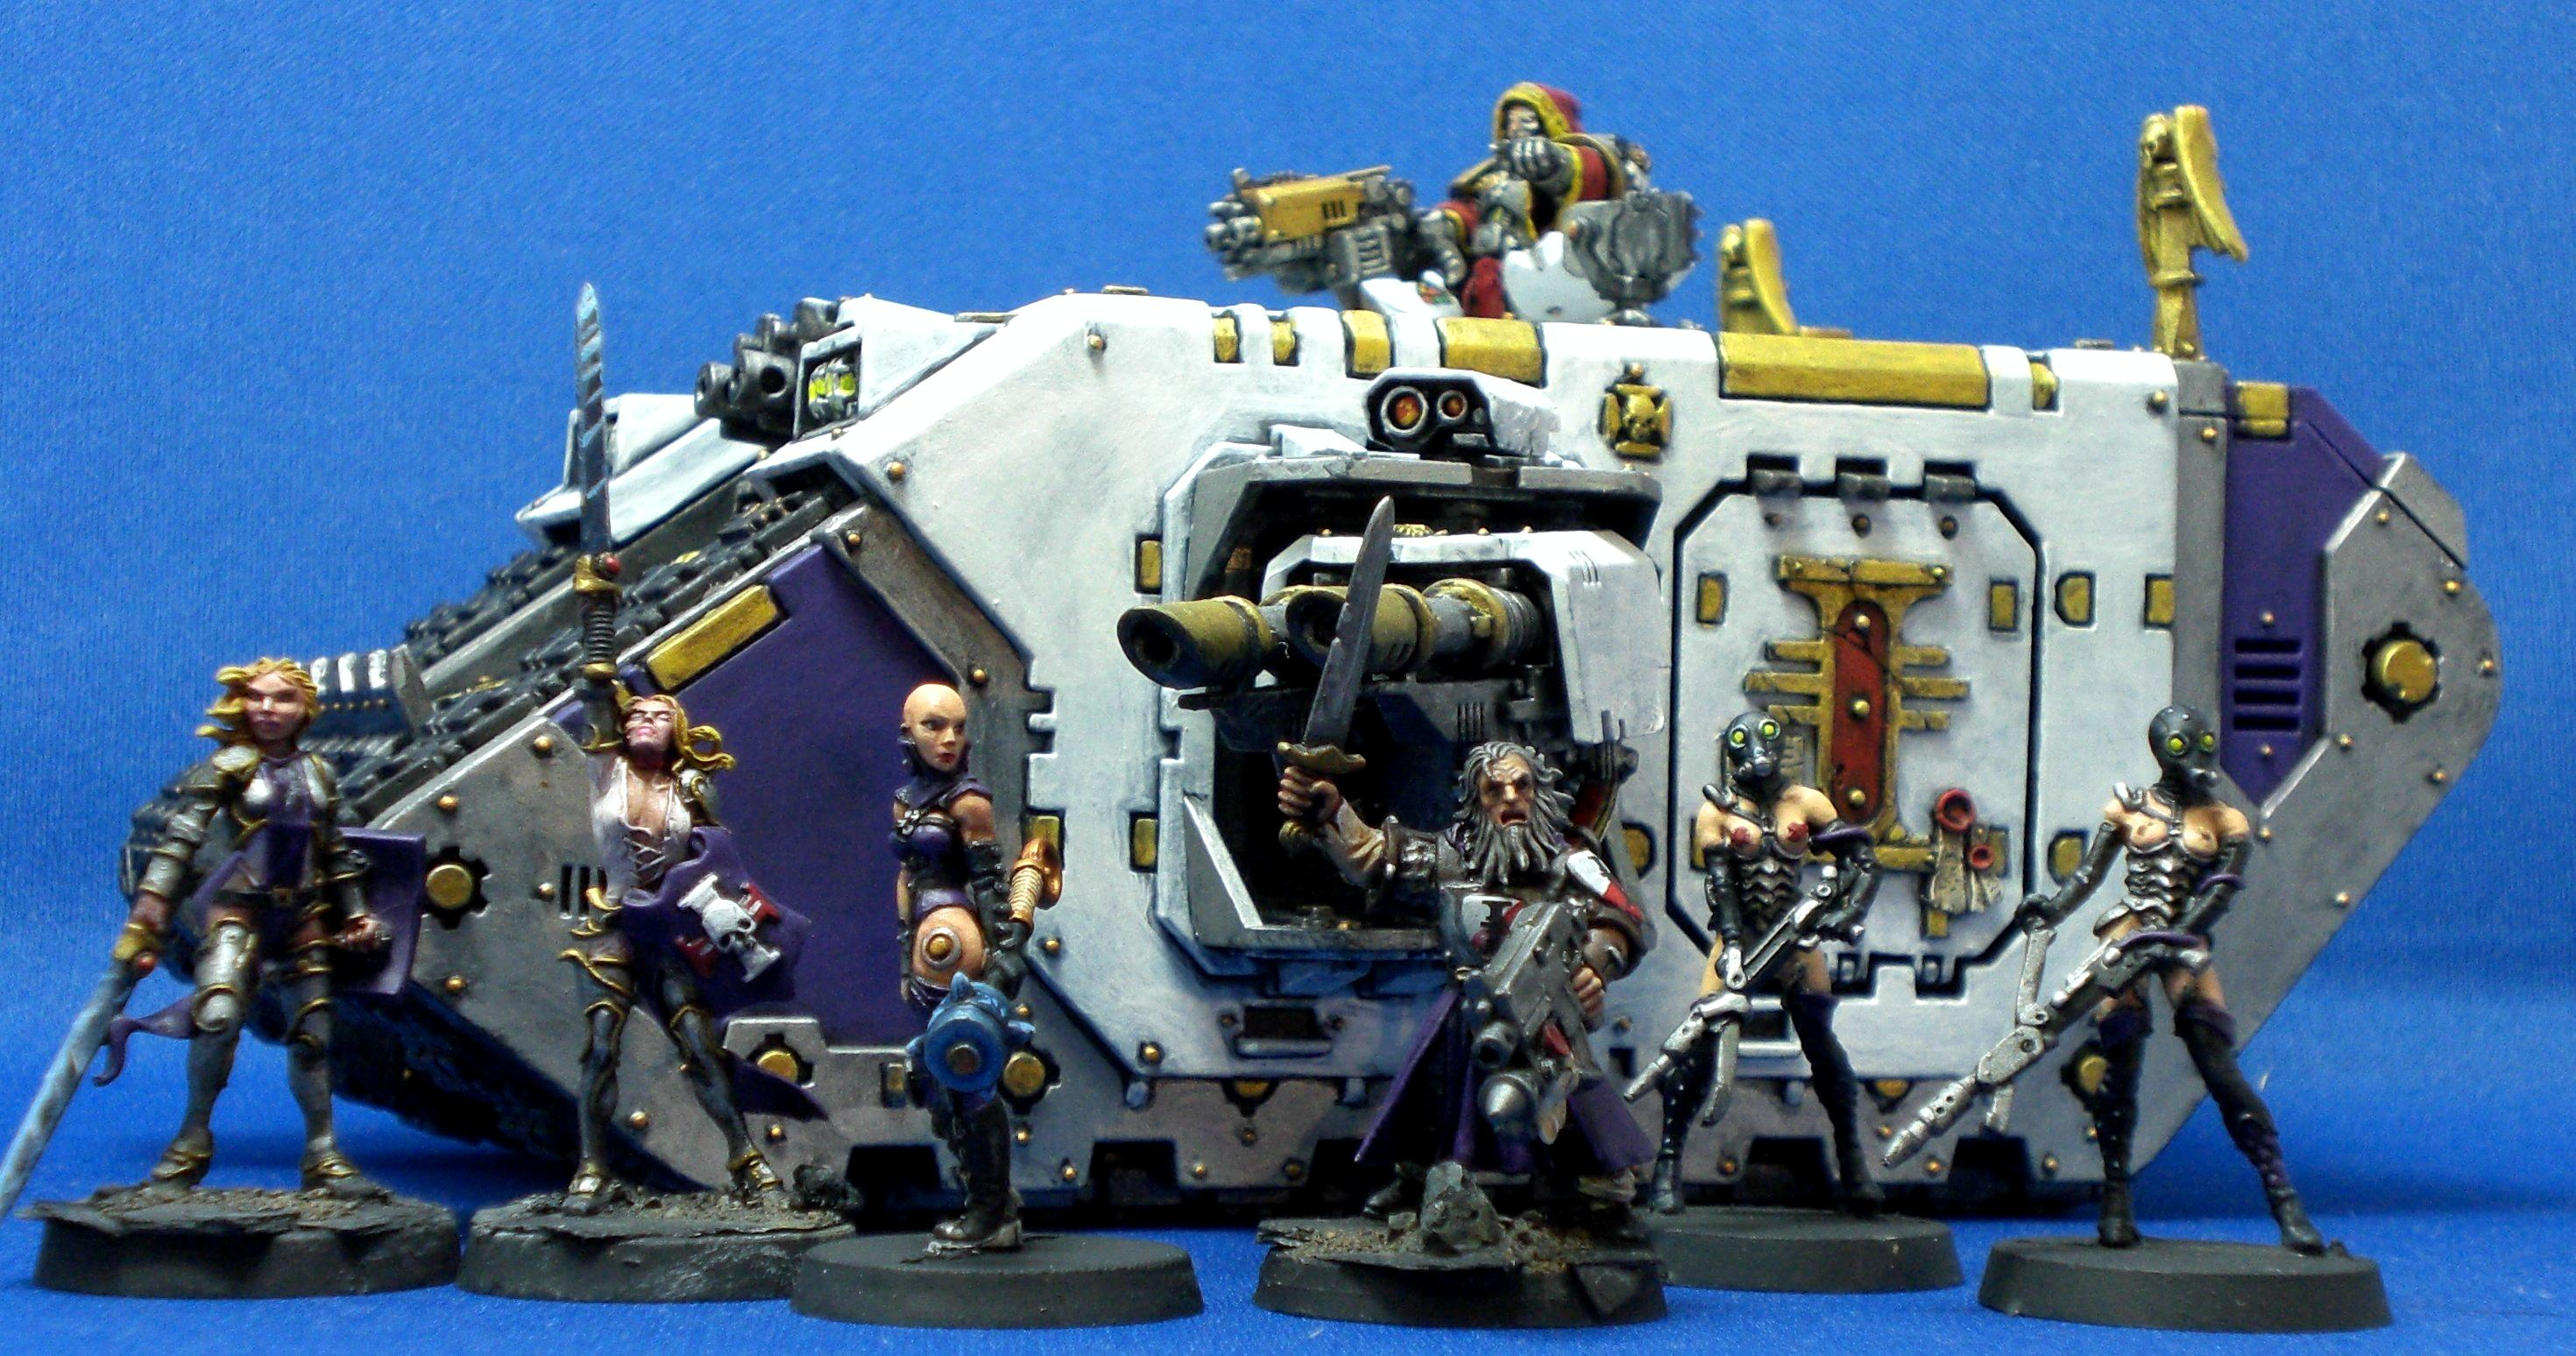 Female, Girl, Girls, Inquisition, Inquisitor, Land Raider, Retinue